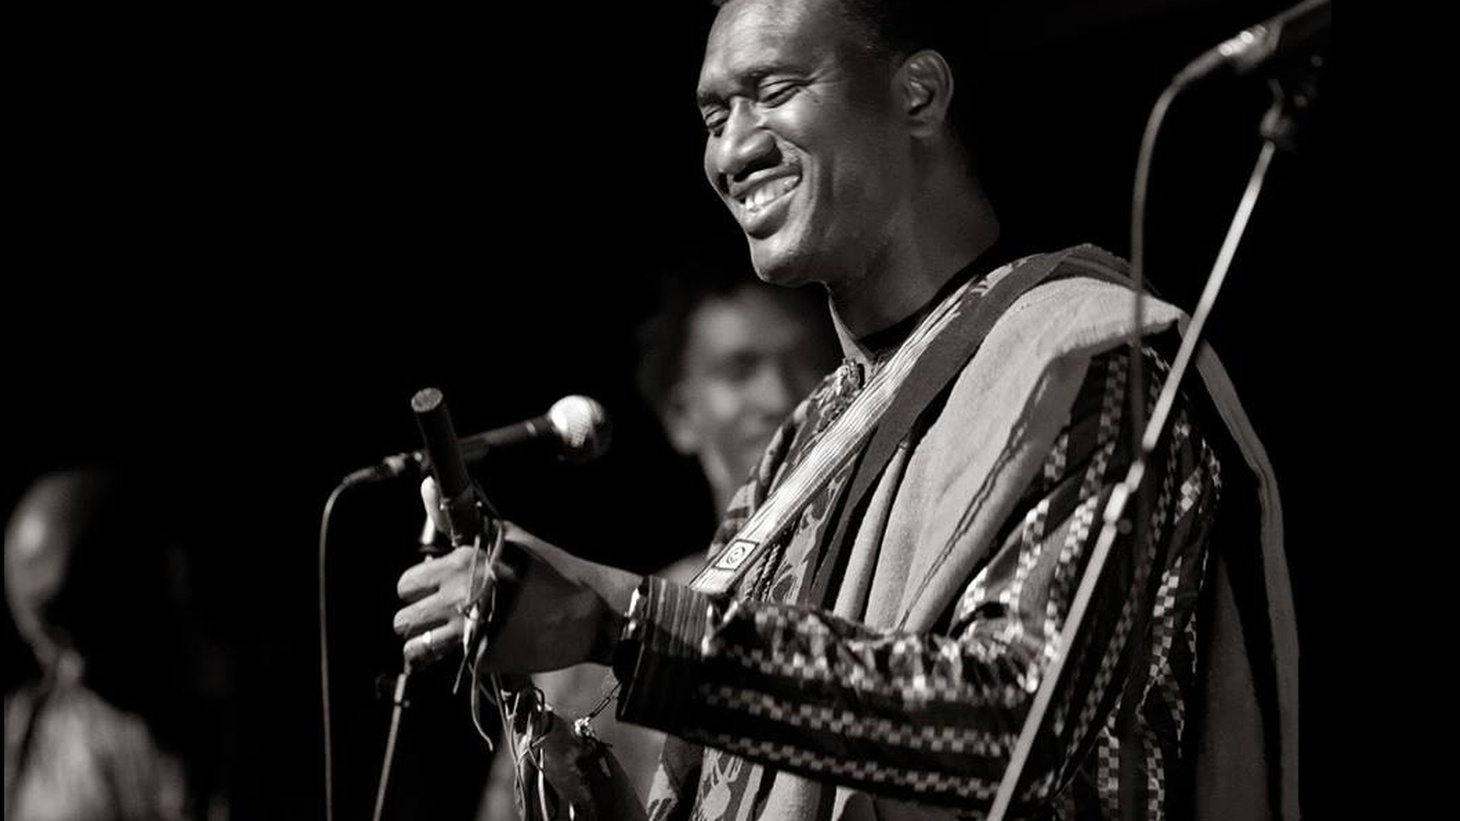 Rhythm Planet host Tom Schnabel visits MBE to share some magnificent Malian music from Bassekou Kouyaté and Les Ambassadeurs. (10am)